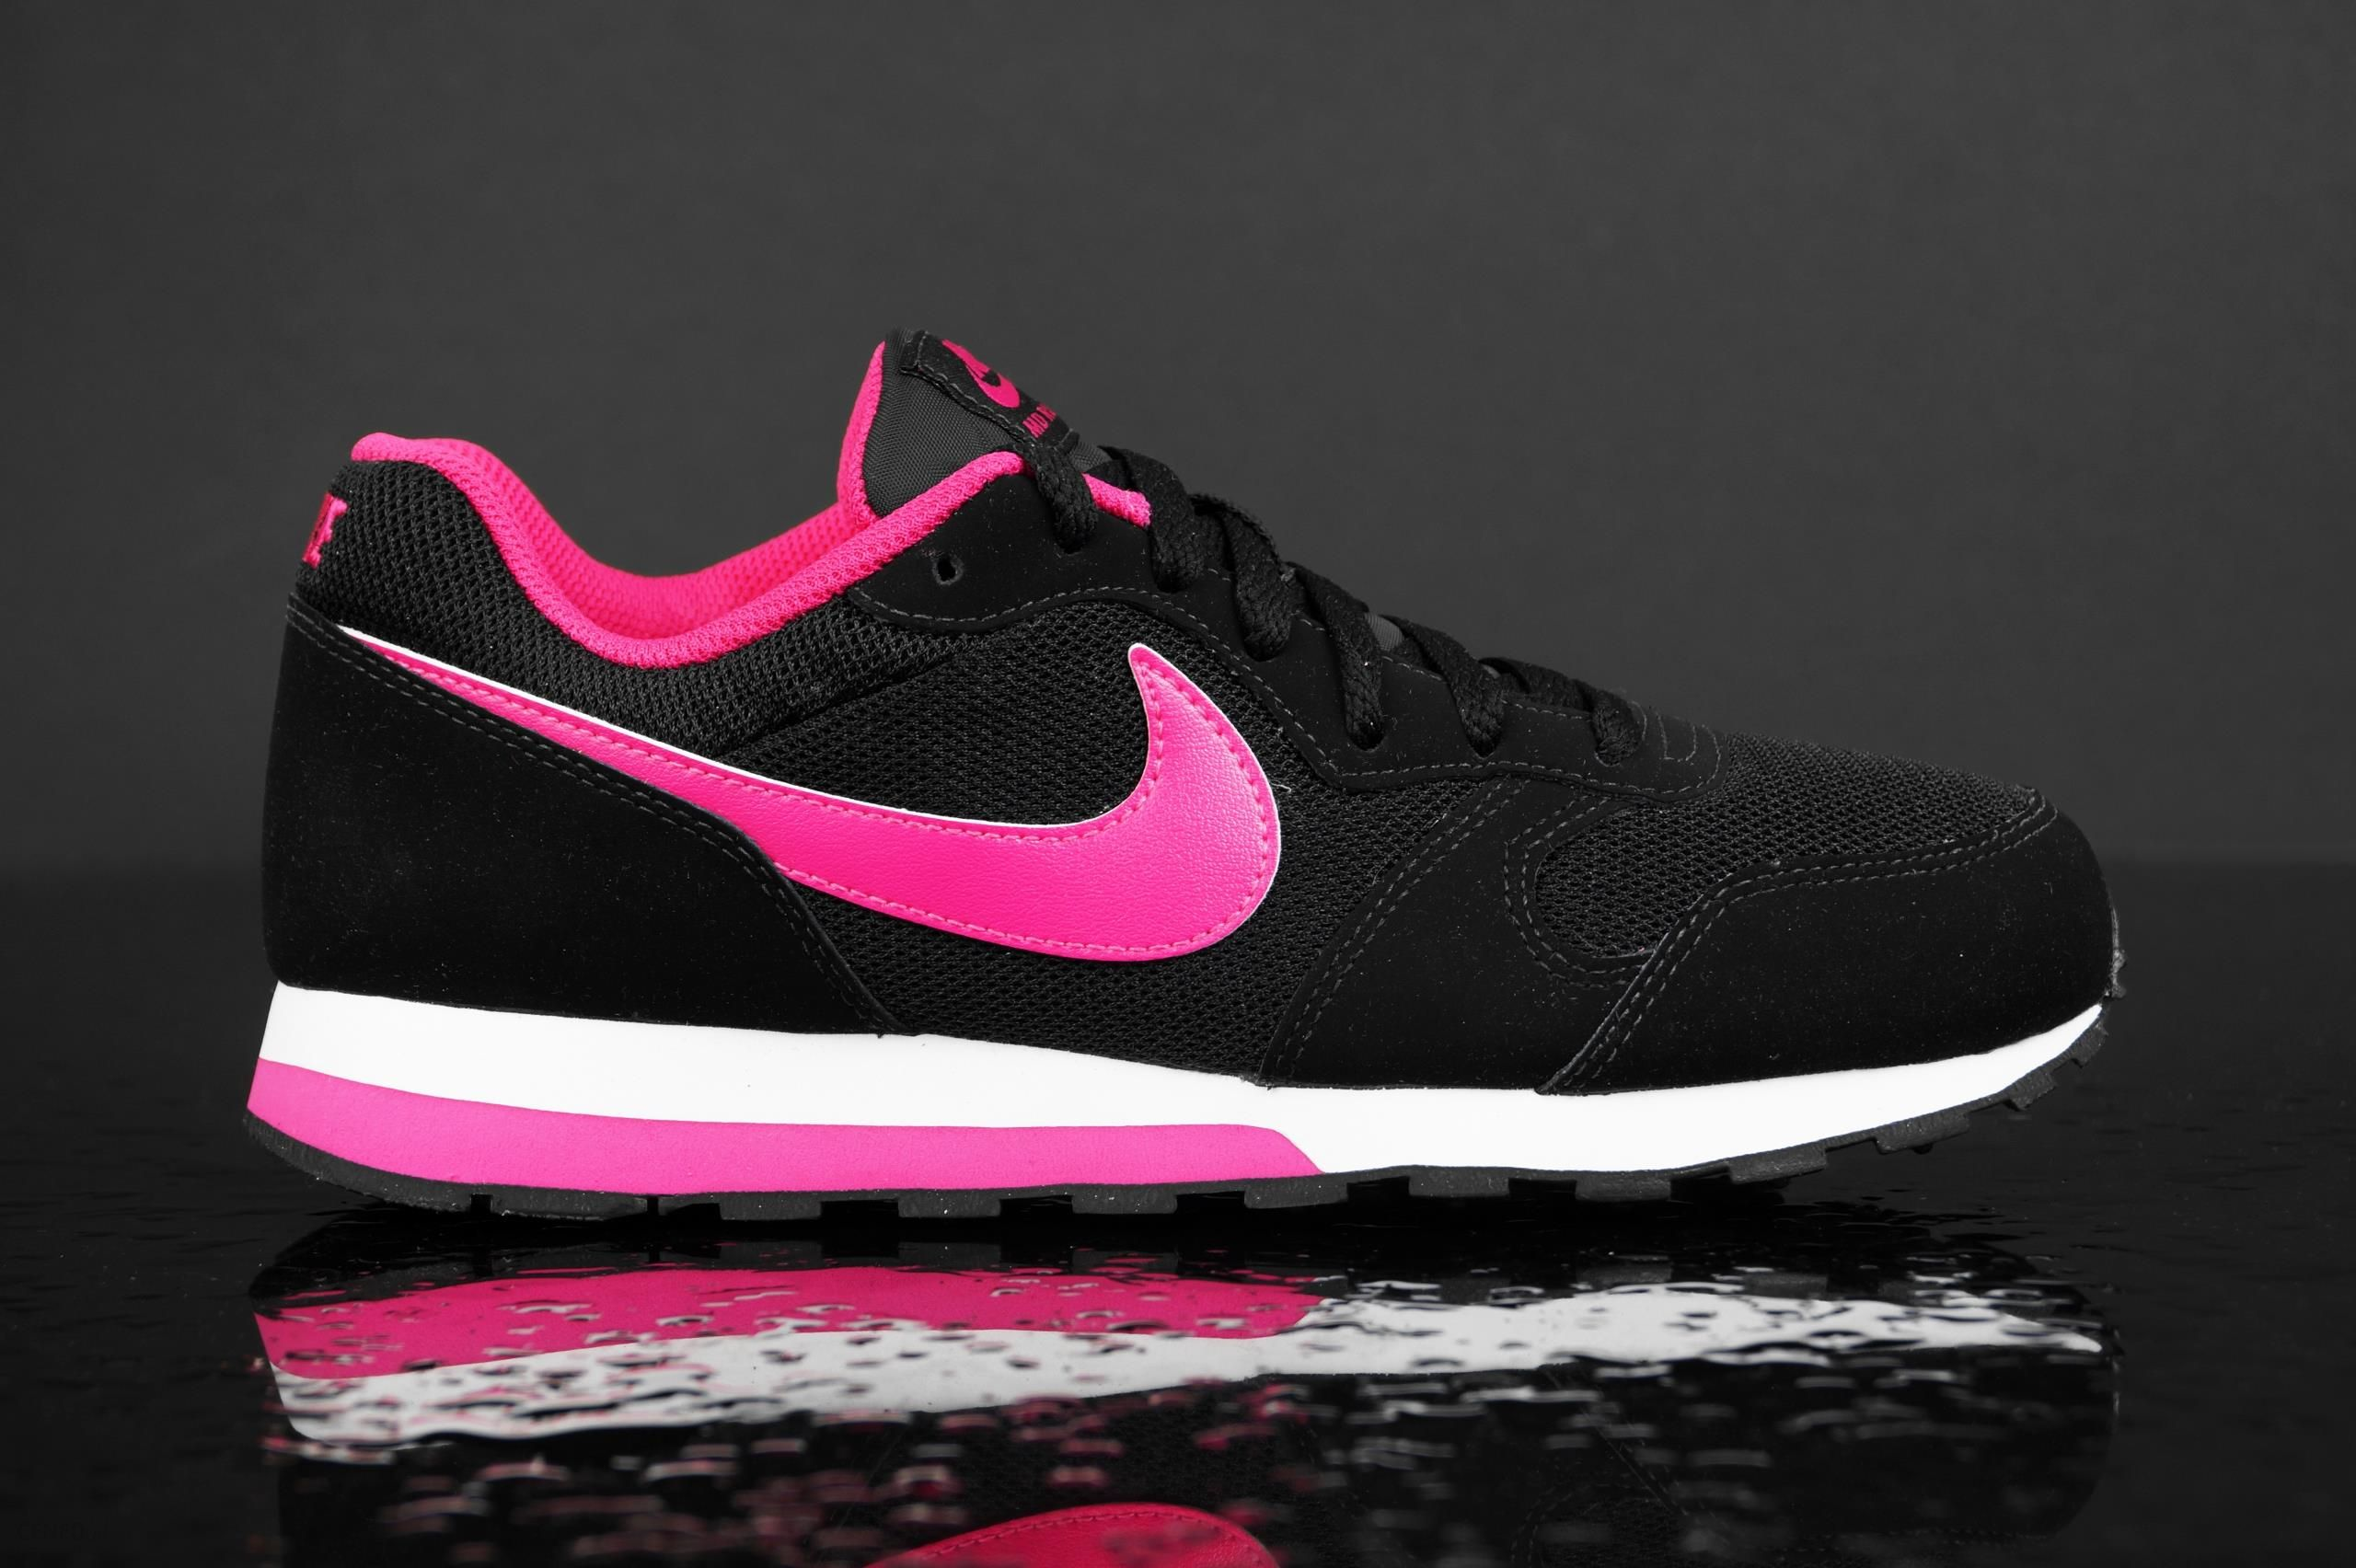 BUTY NIKE MD RUNNER 2 (GS) 807319 006 Ceny i opinie Ceneo.pl